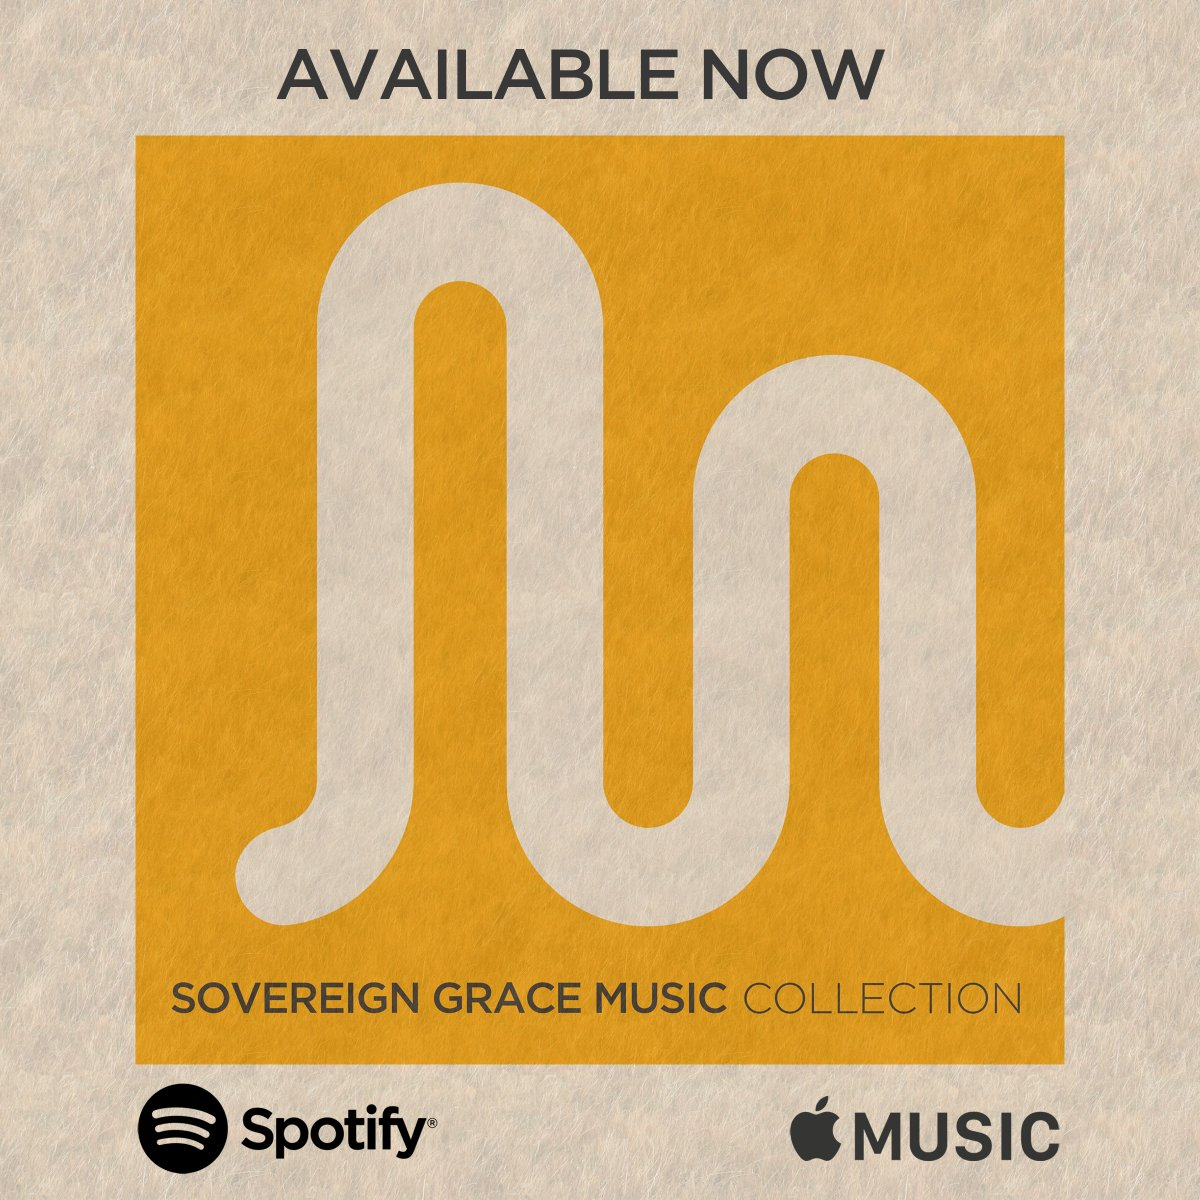 Listen on Spotify: ow.ly/MaAl50AiTyT Listen on Apple Music: ow.ly/EnRq50AiTyR